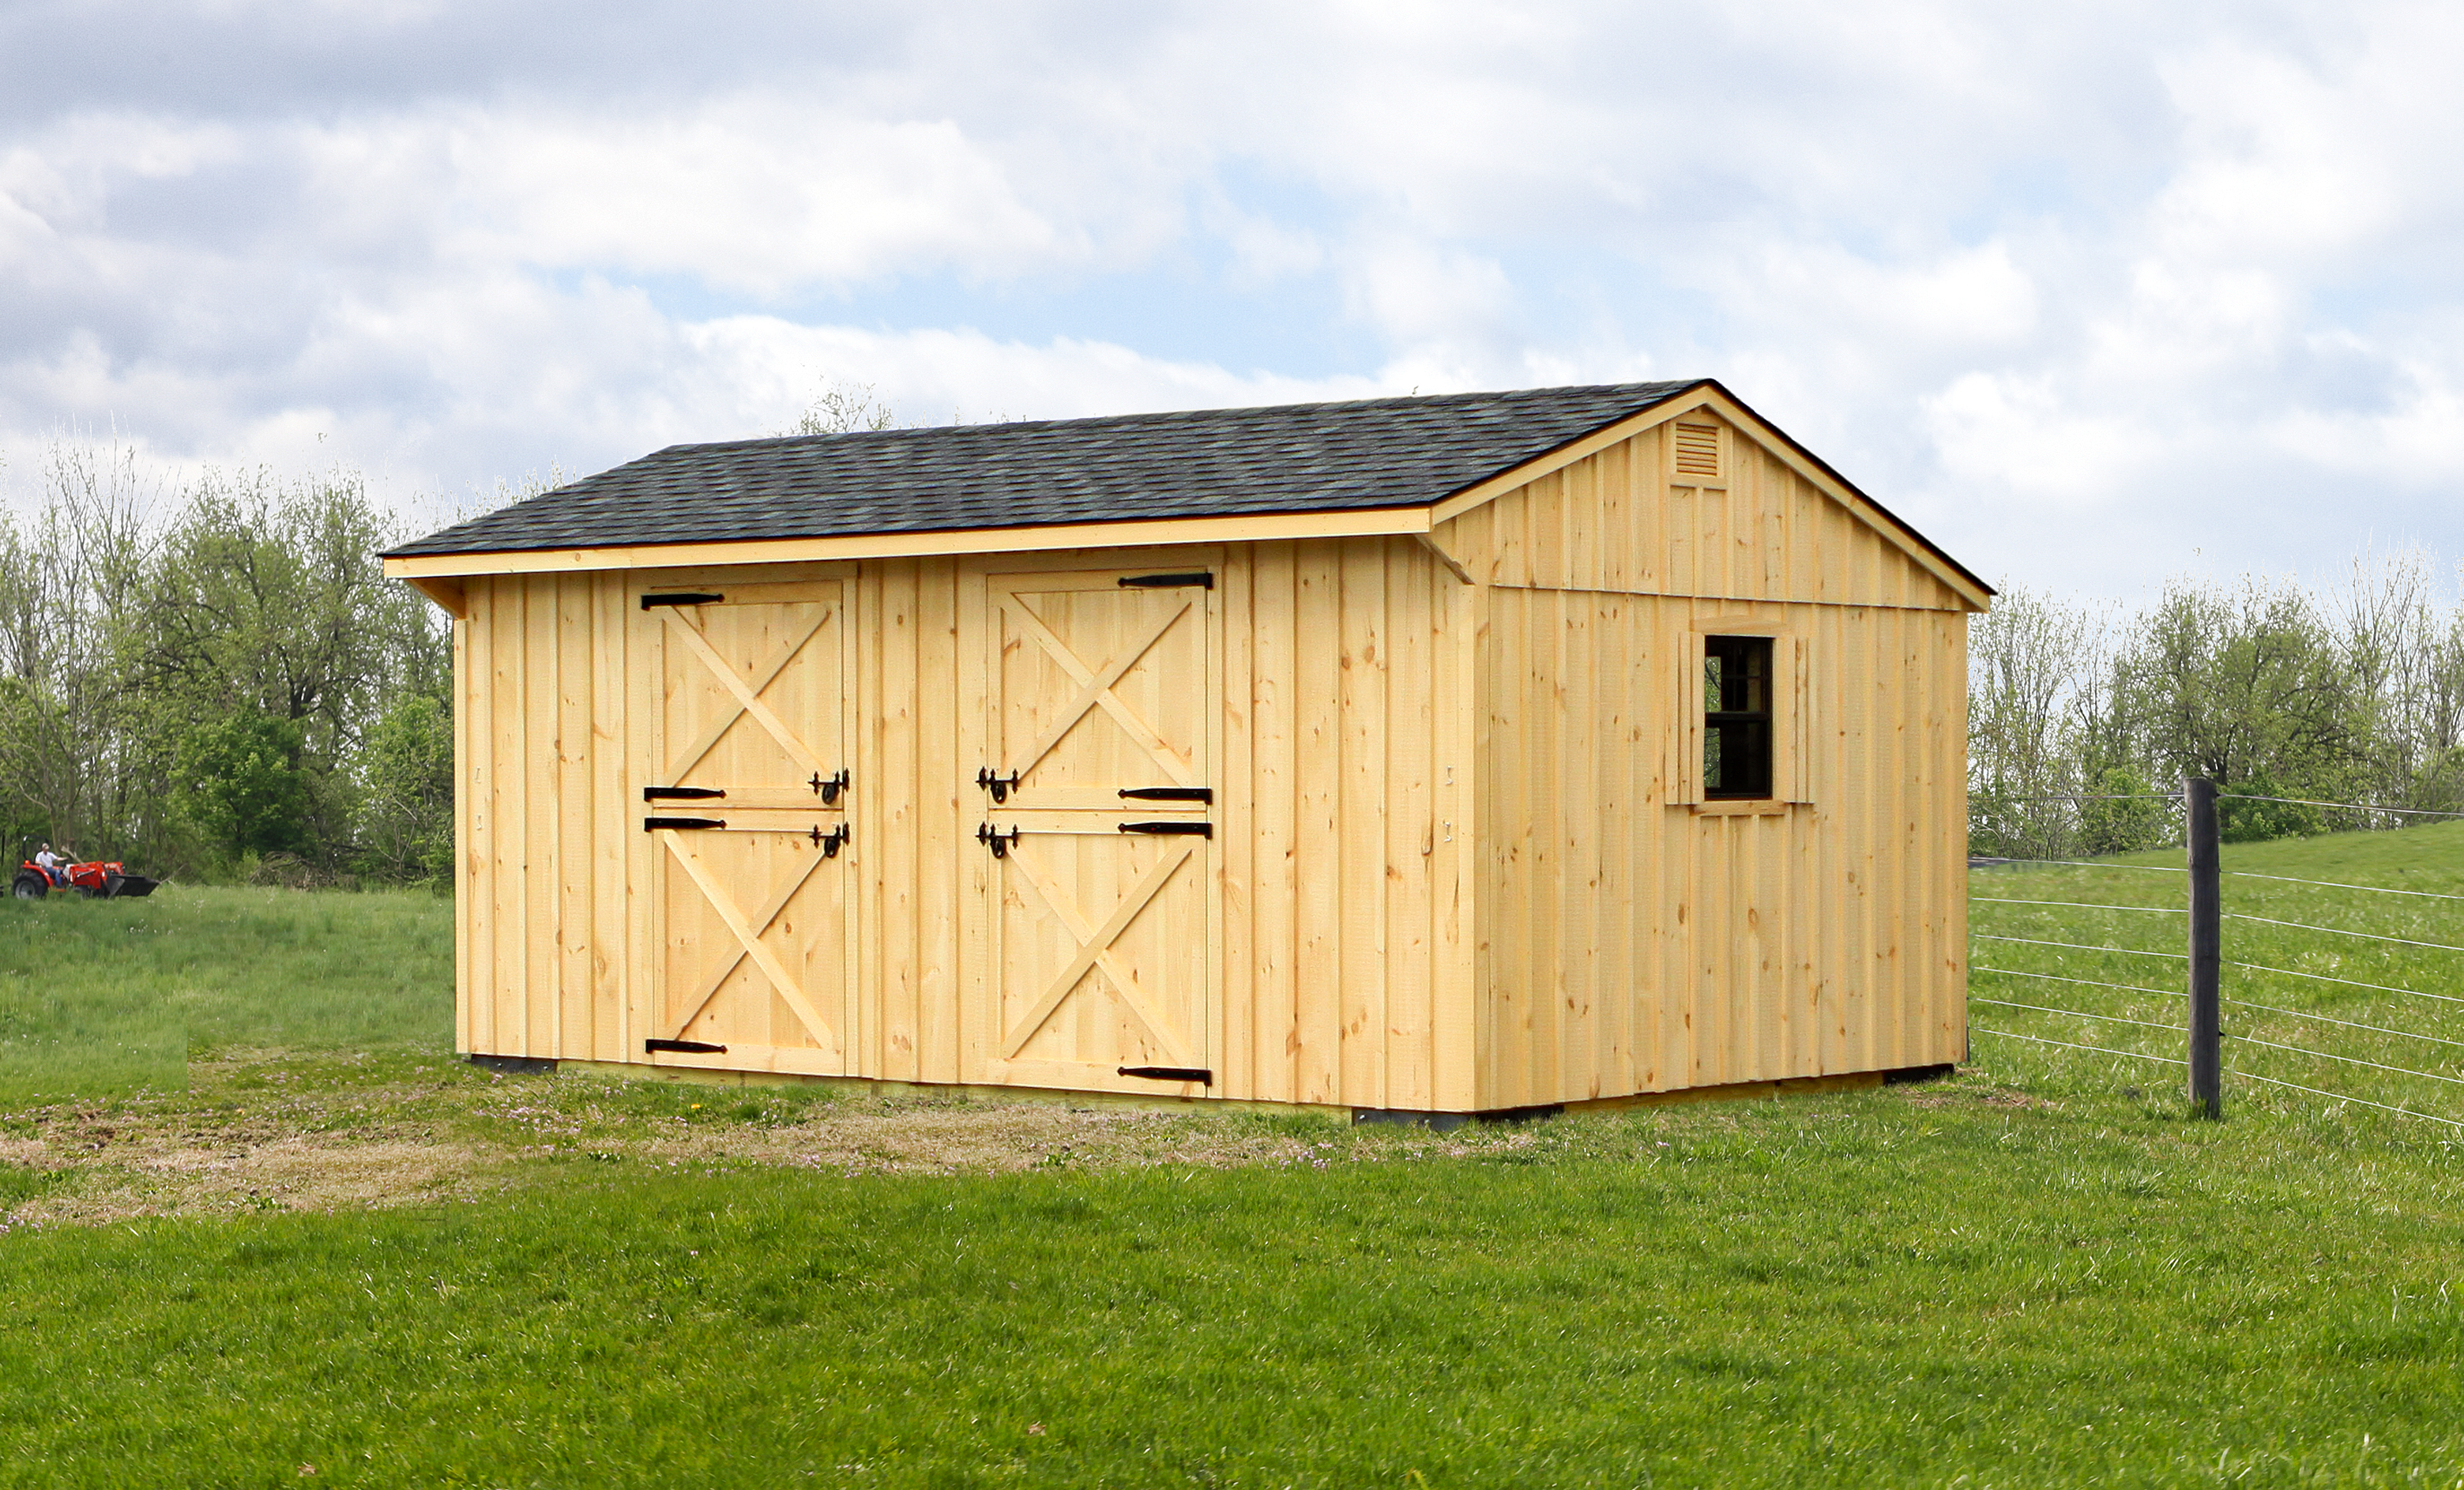 ideas depot barns kits built log quarters homes cabins design for loft pre inspiring fabricated plan amish with barn prefab custom ti horse modular living home house